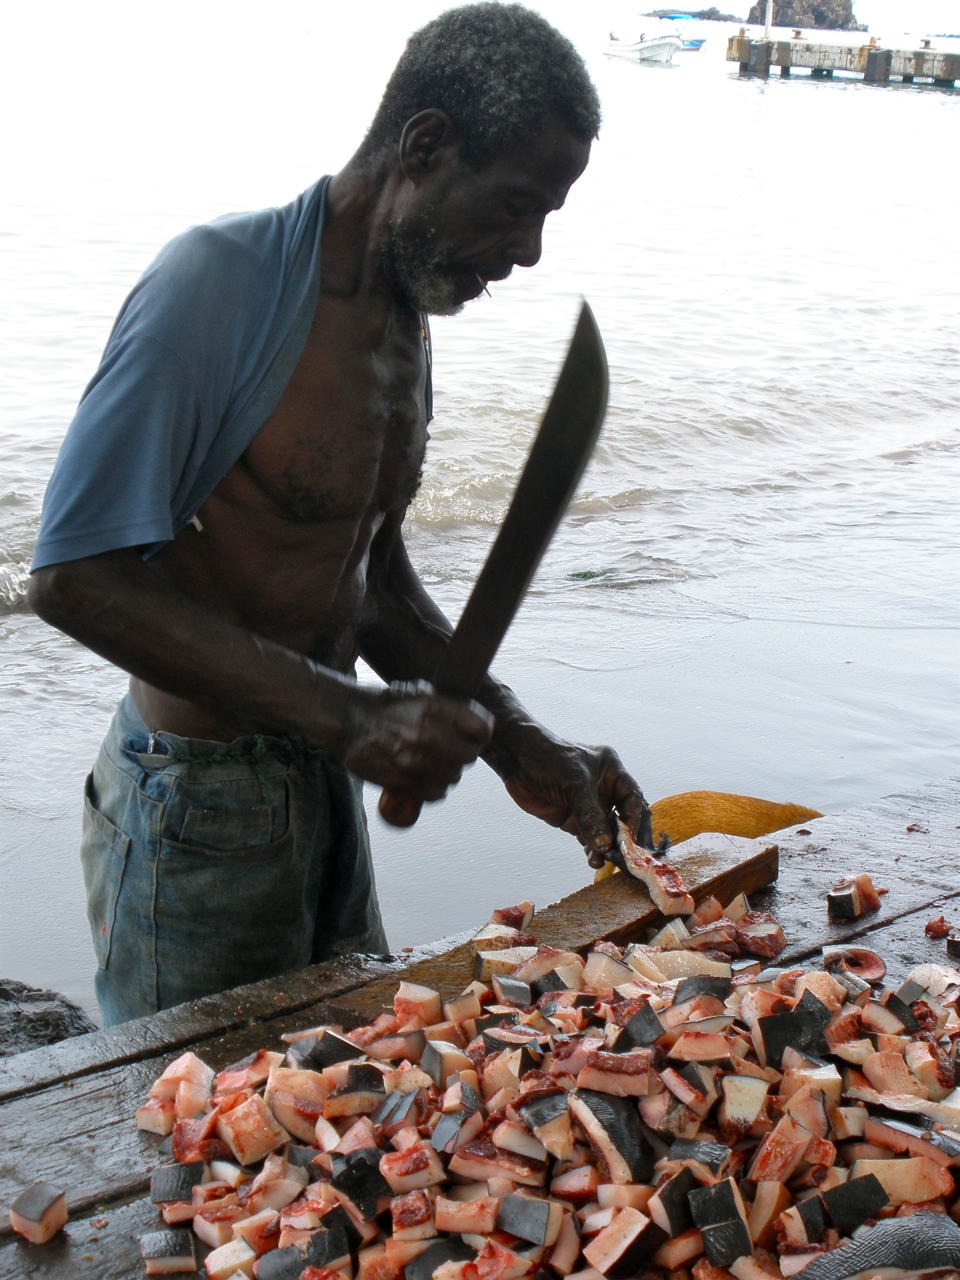 Whalers in the Caribbean preparing whale meat. Photo: Russell Fielding